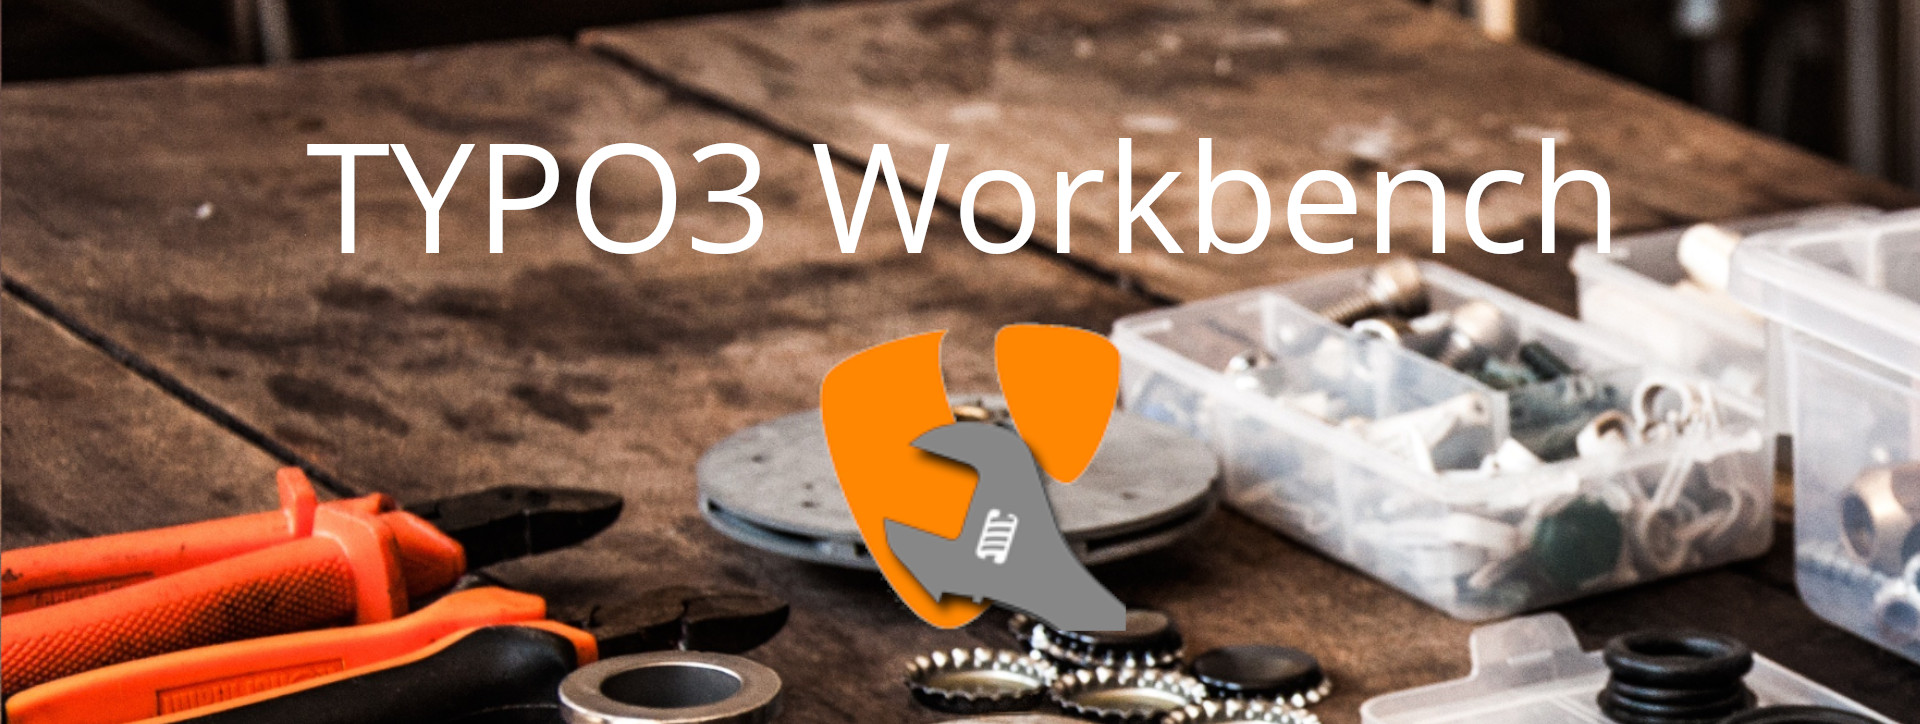 typo3workbench